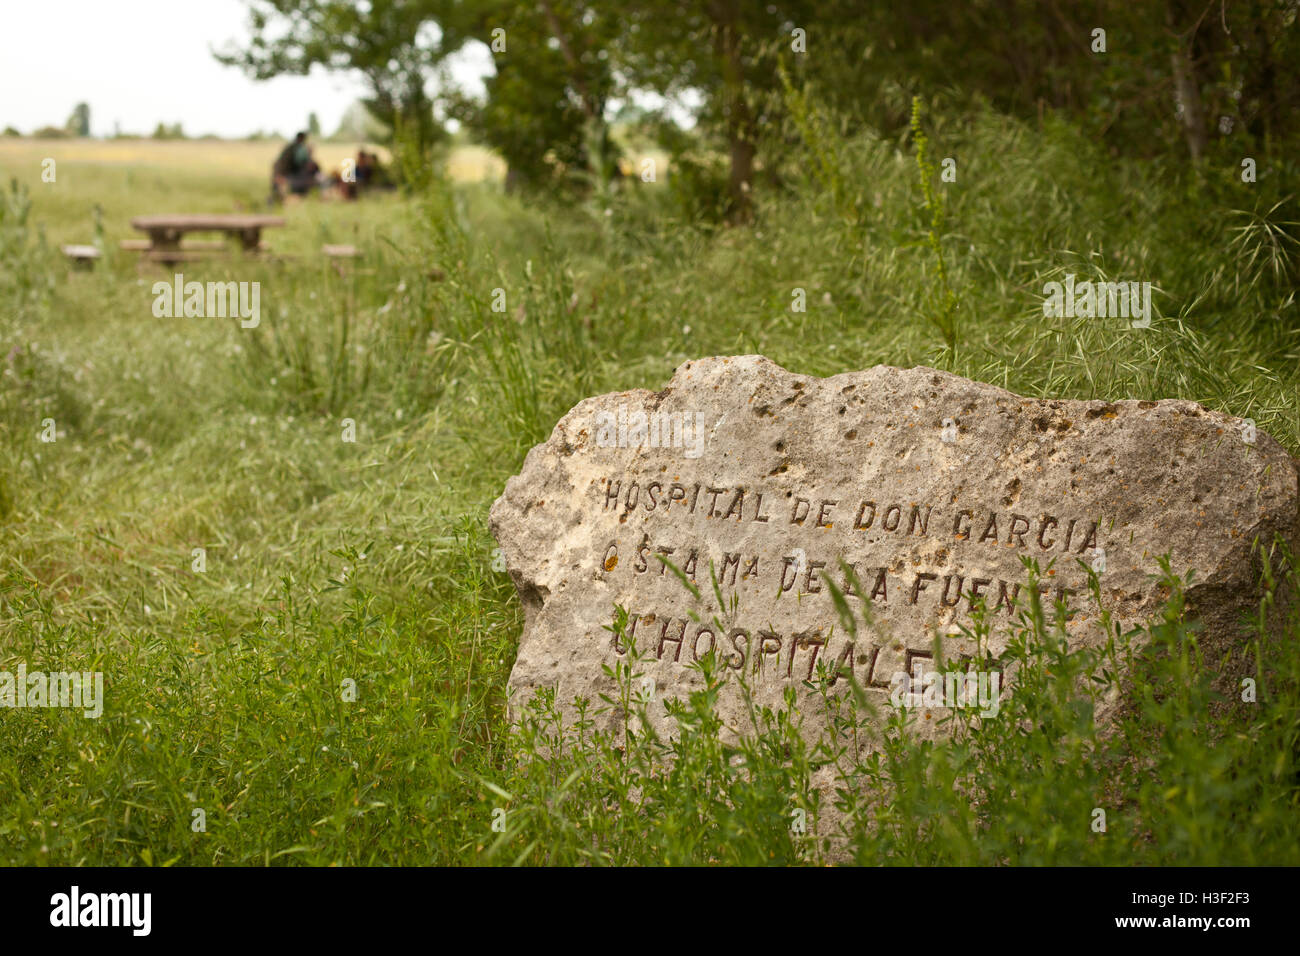 Stone marker signifies the place where a hospital once stood along the Camino de Santiago, route Frances - Stock Image